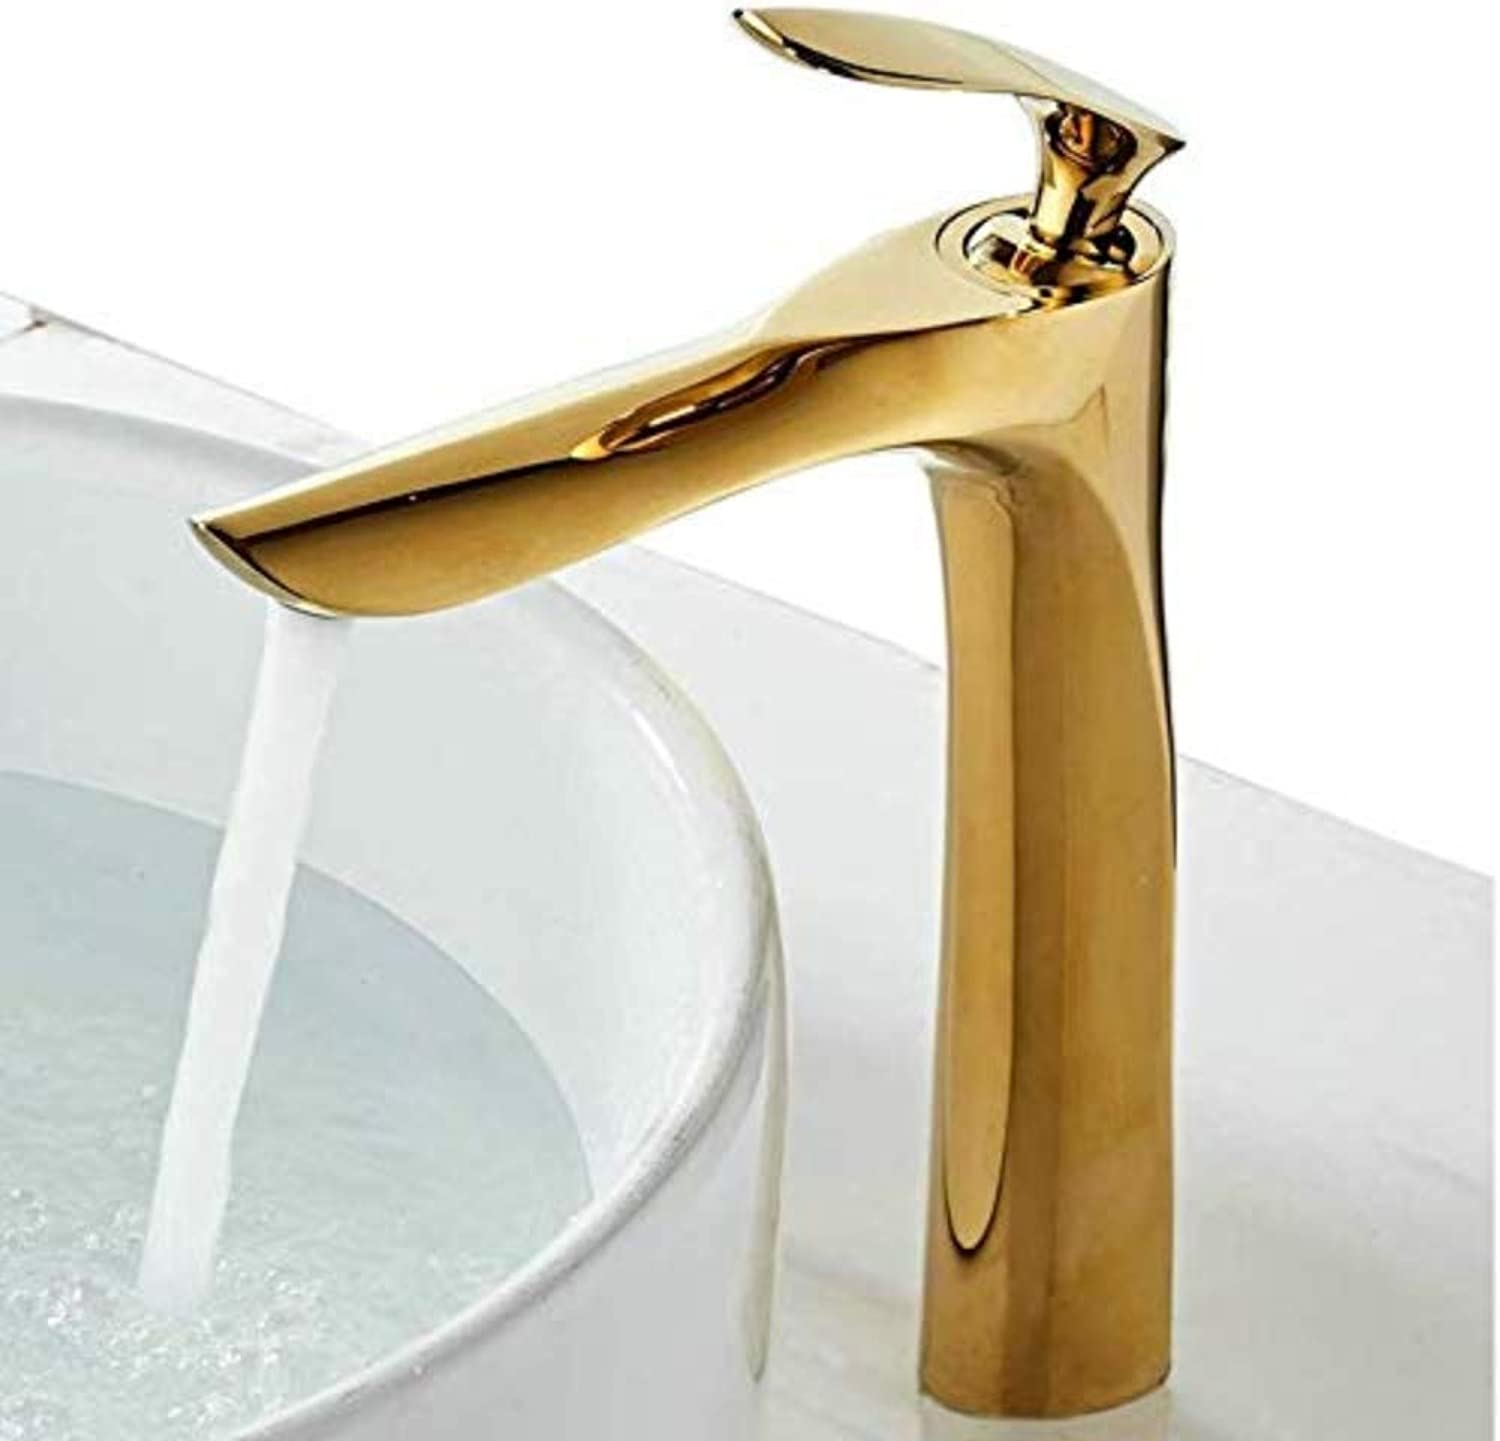 Faucettall Counter Top Basin Mixer Tap Curved Bathroom Sink Tap Designer Style,Polish gold,